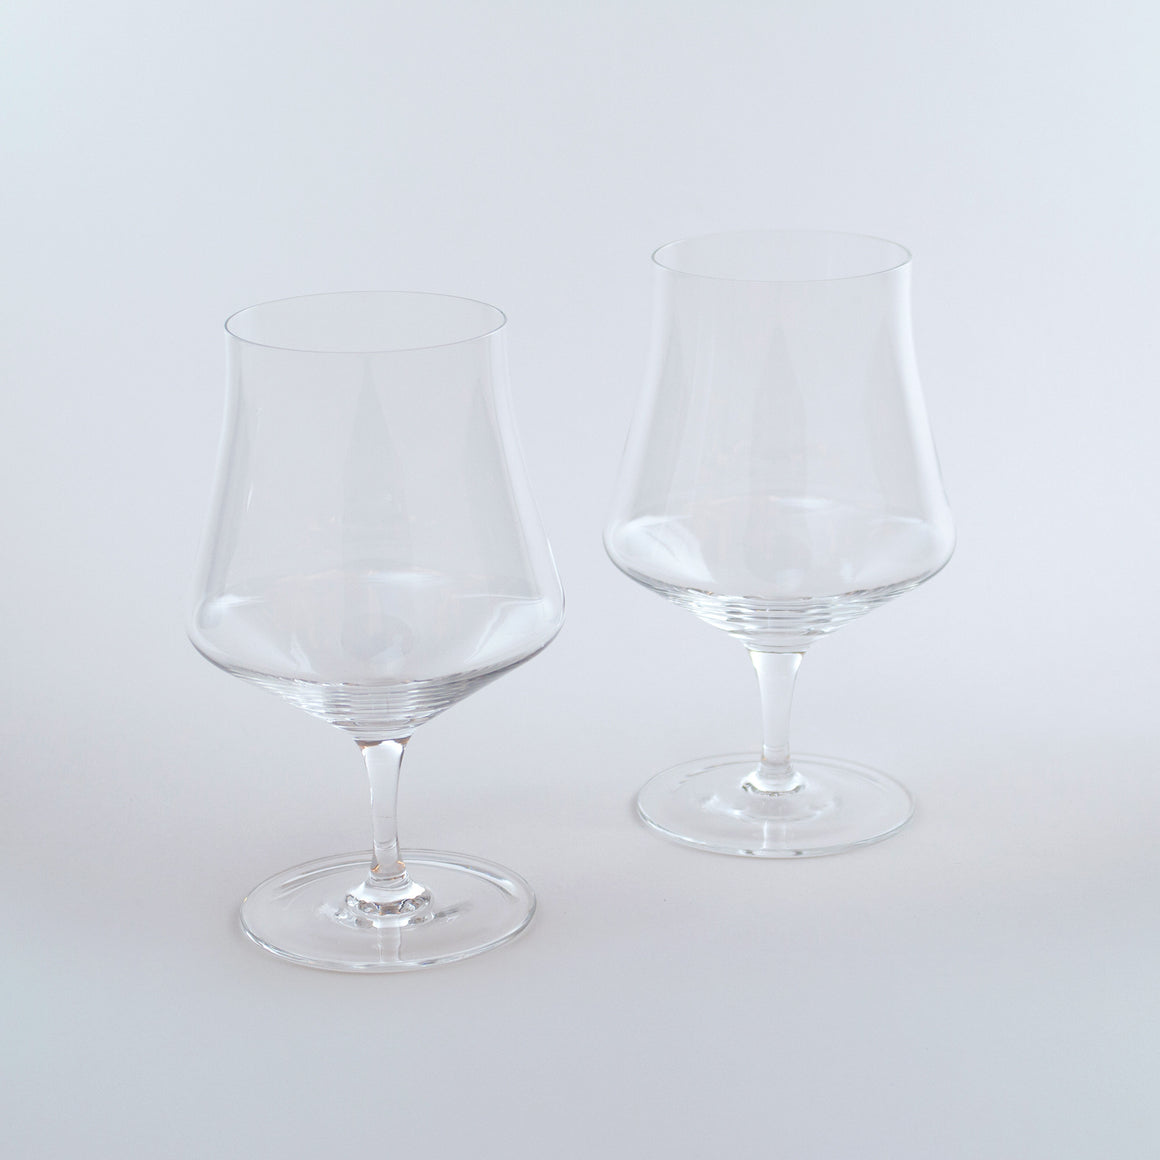 The Ultimate Crystal Craft Beer Glasses (Set of 2)